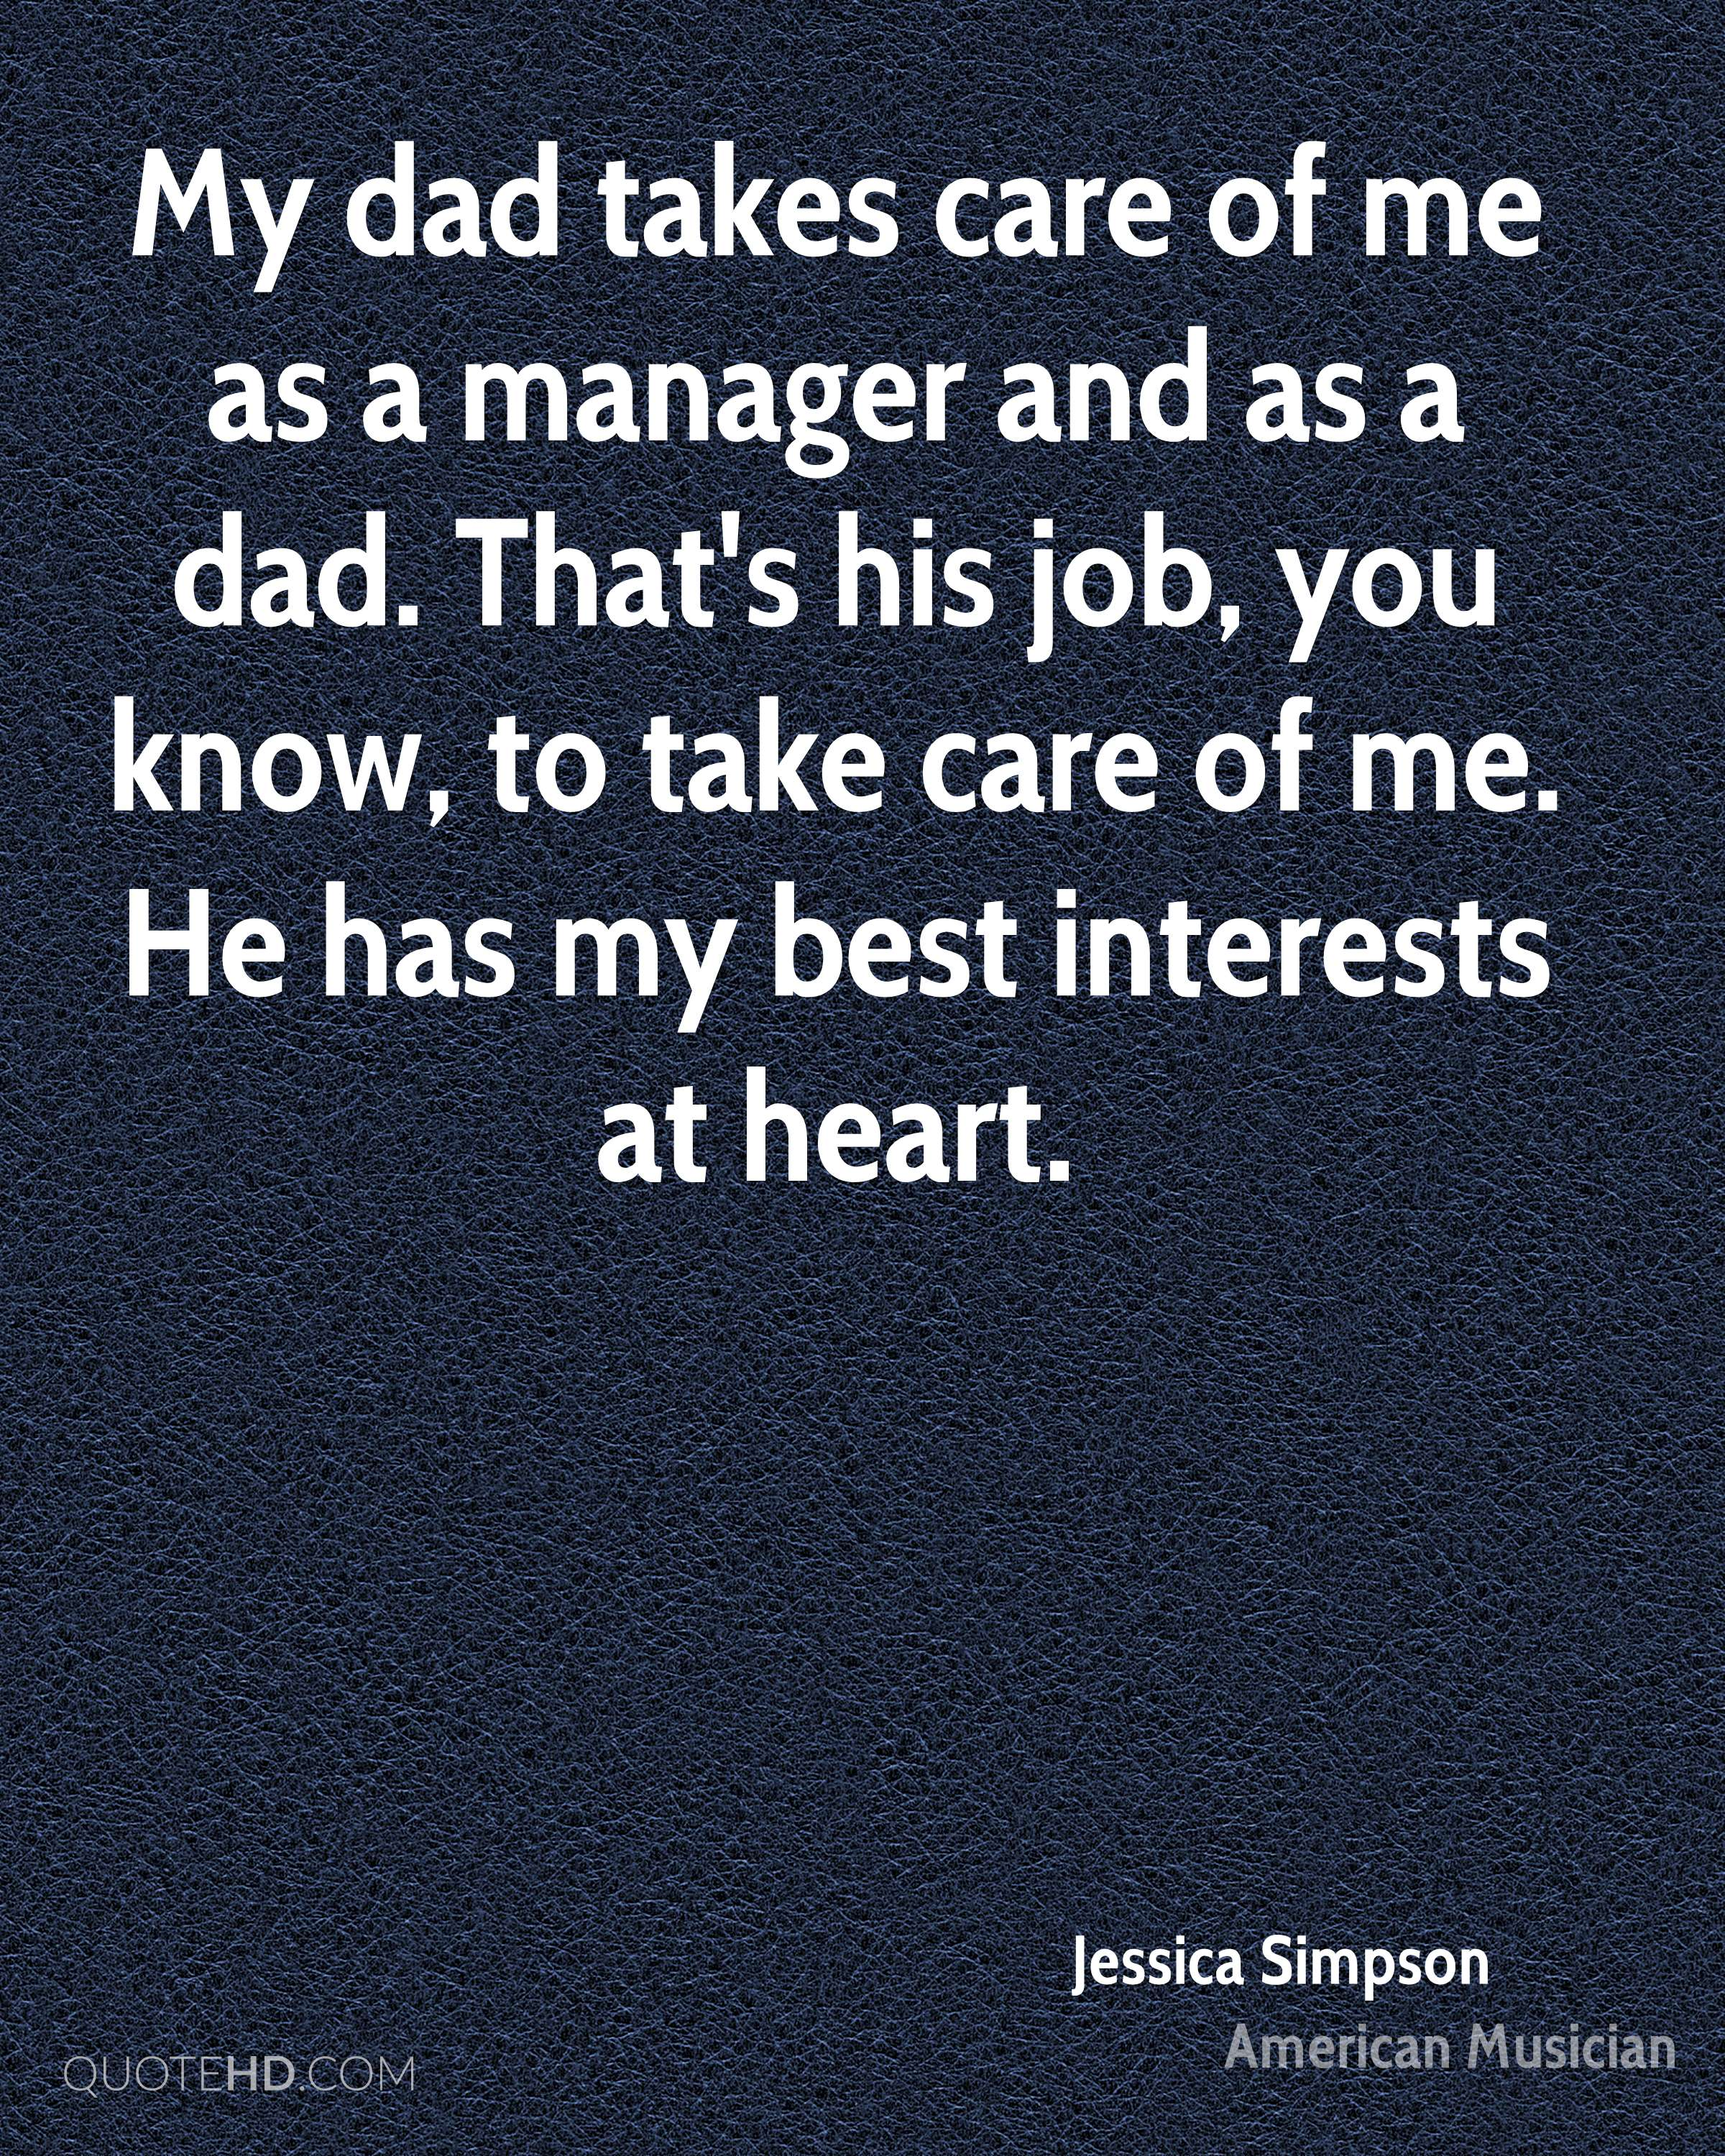 My dad takes care of me as a manager and as a dad. That's his job, you know, to take care of me. He has my best interests at heart.